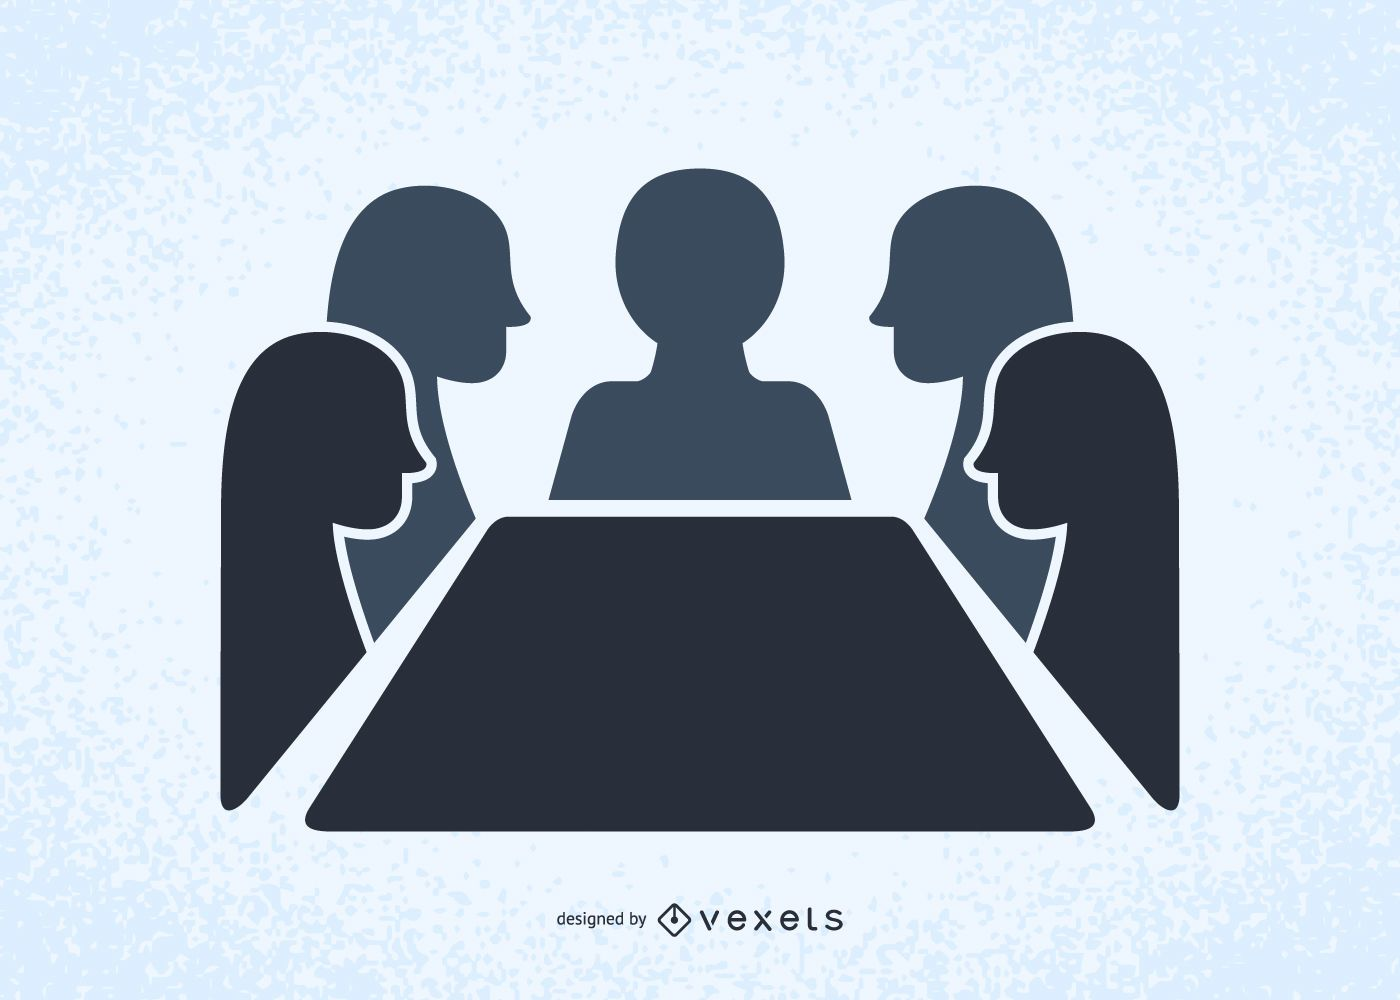 People in a meeting illustrated silhouettes